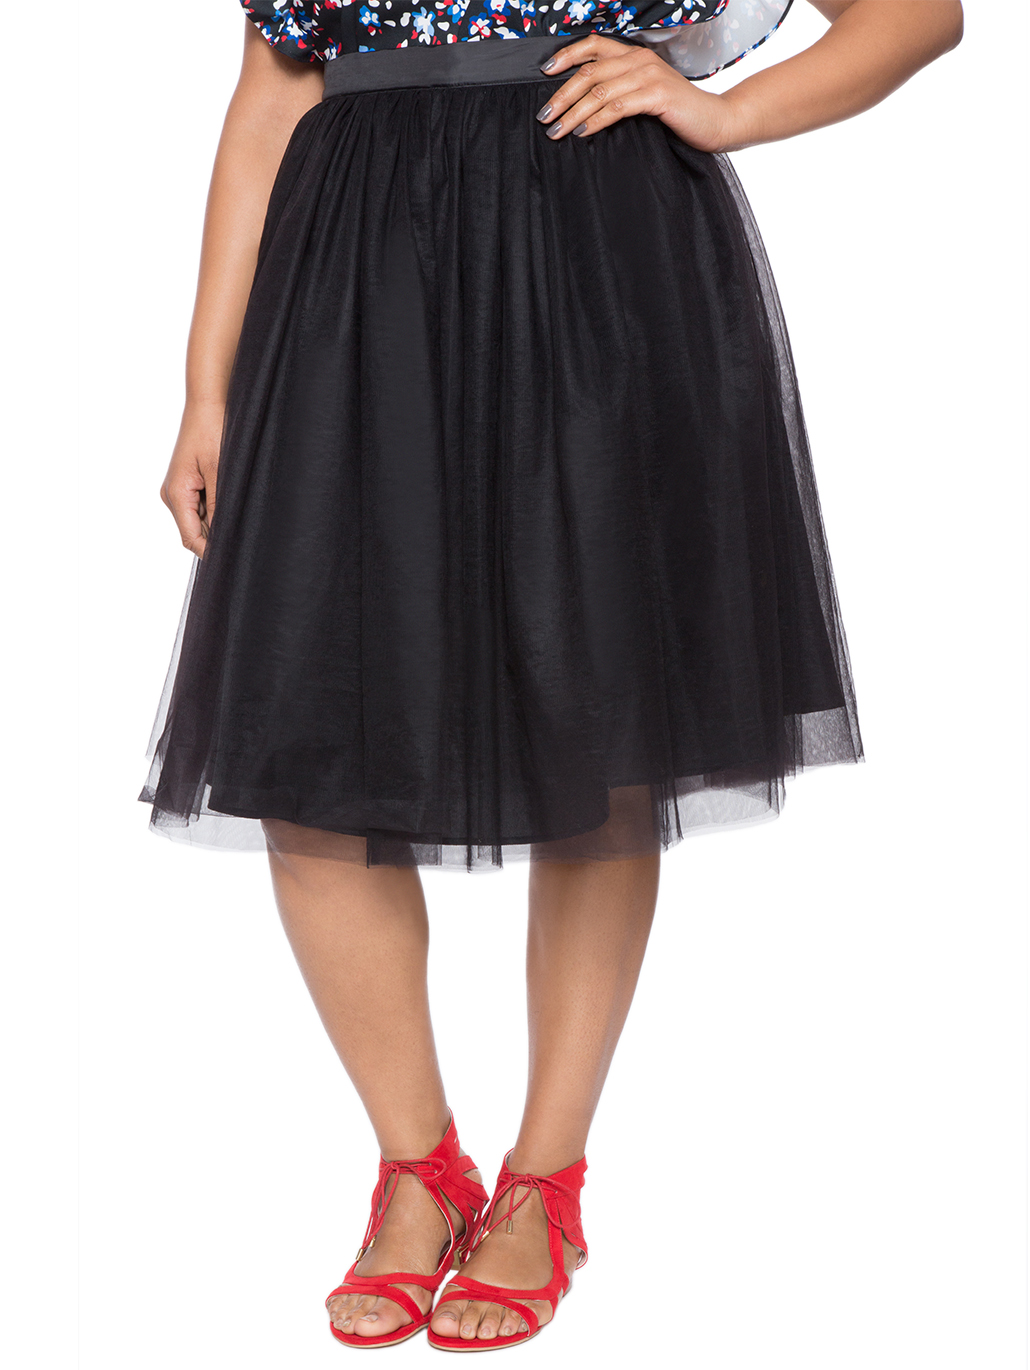 4c0d37c81 Studio Tulle Midi Skirt | Women's Plus Size Skirts | ELOQUII